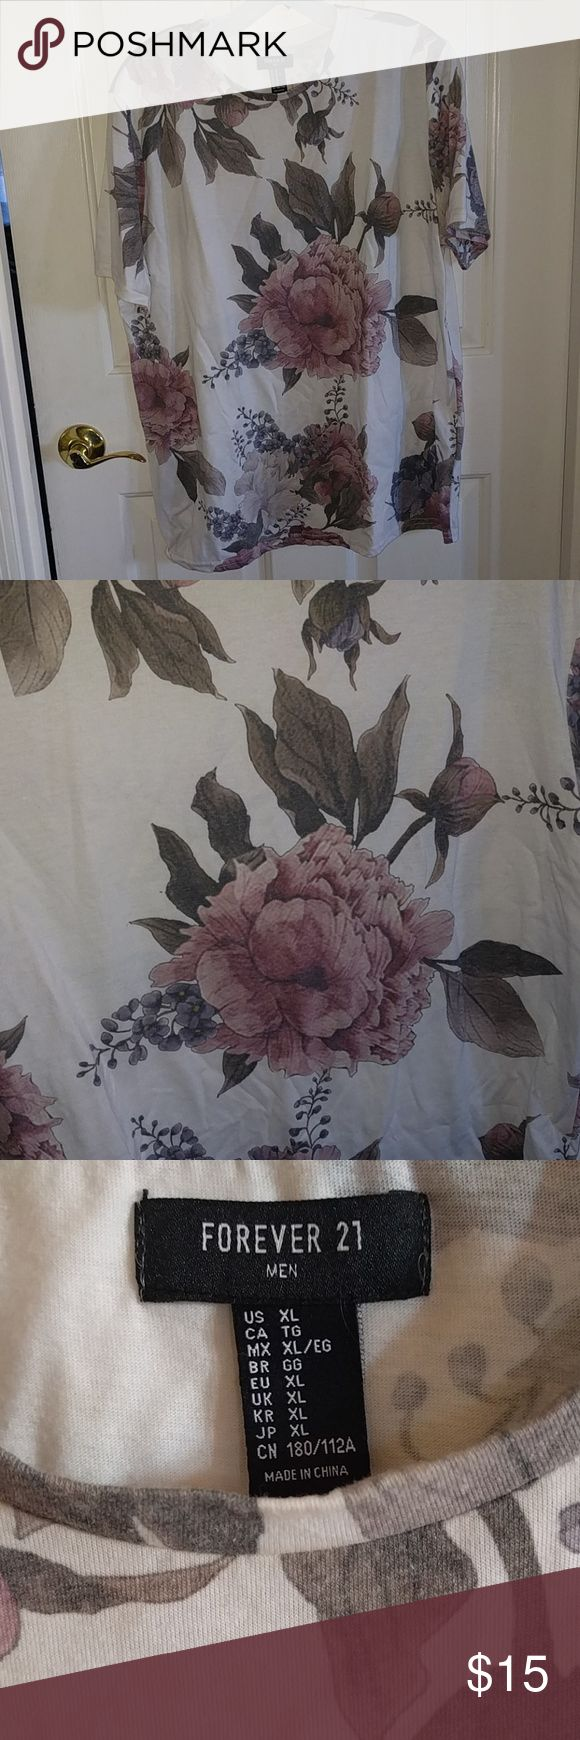 Floral Tee This is a men's forever 21 t shirt, but it is a slim fit, so it fits more like a women's XL or a men's L. The pattern is a gorgeous floral peony. Washed but never worn.   Feel free to make an offer! Forever 21 Shirts Tees - Short Sleeve